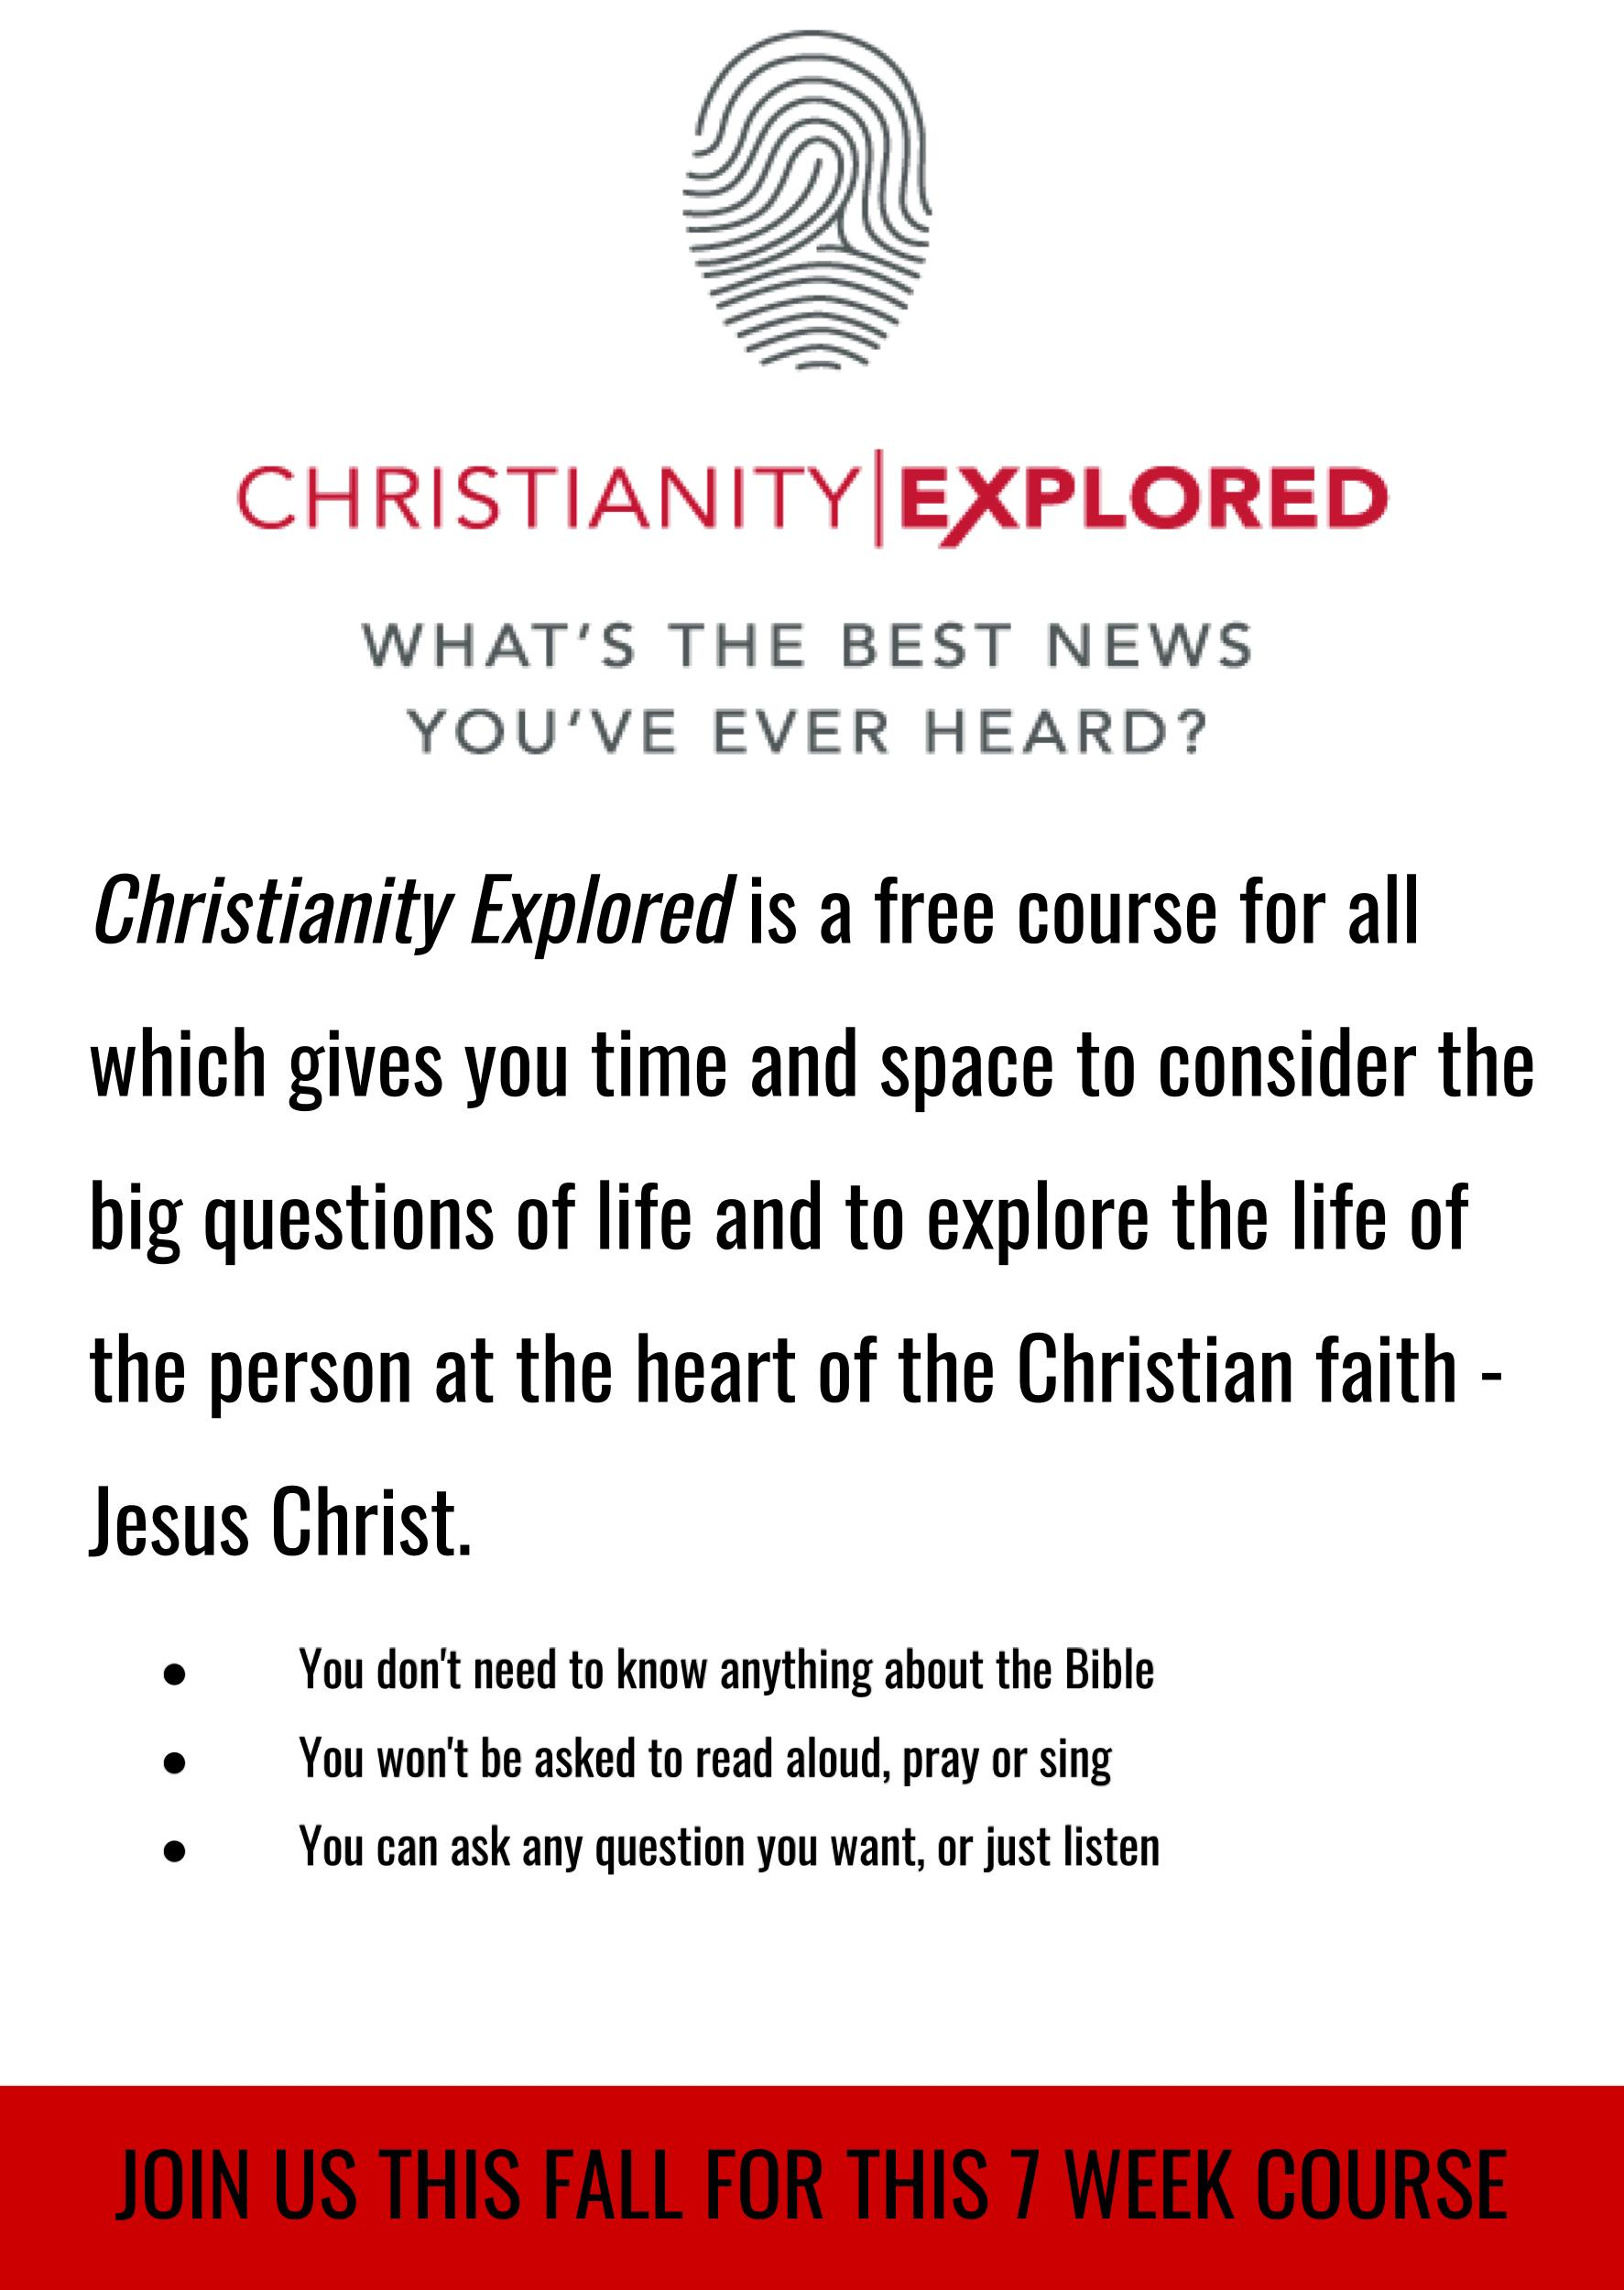 Christianity Explored Invite (front) Higher res..jpg